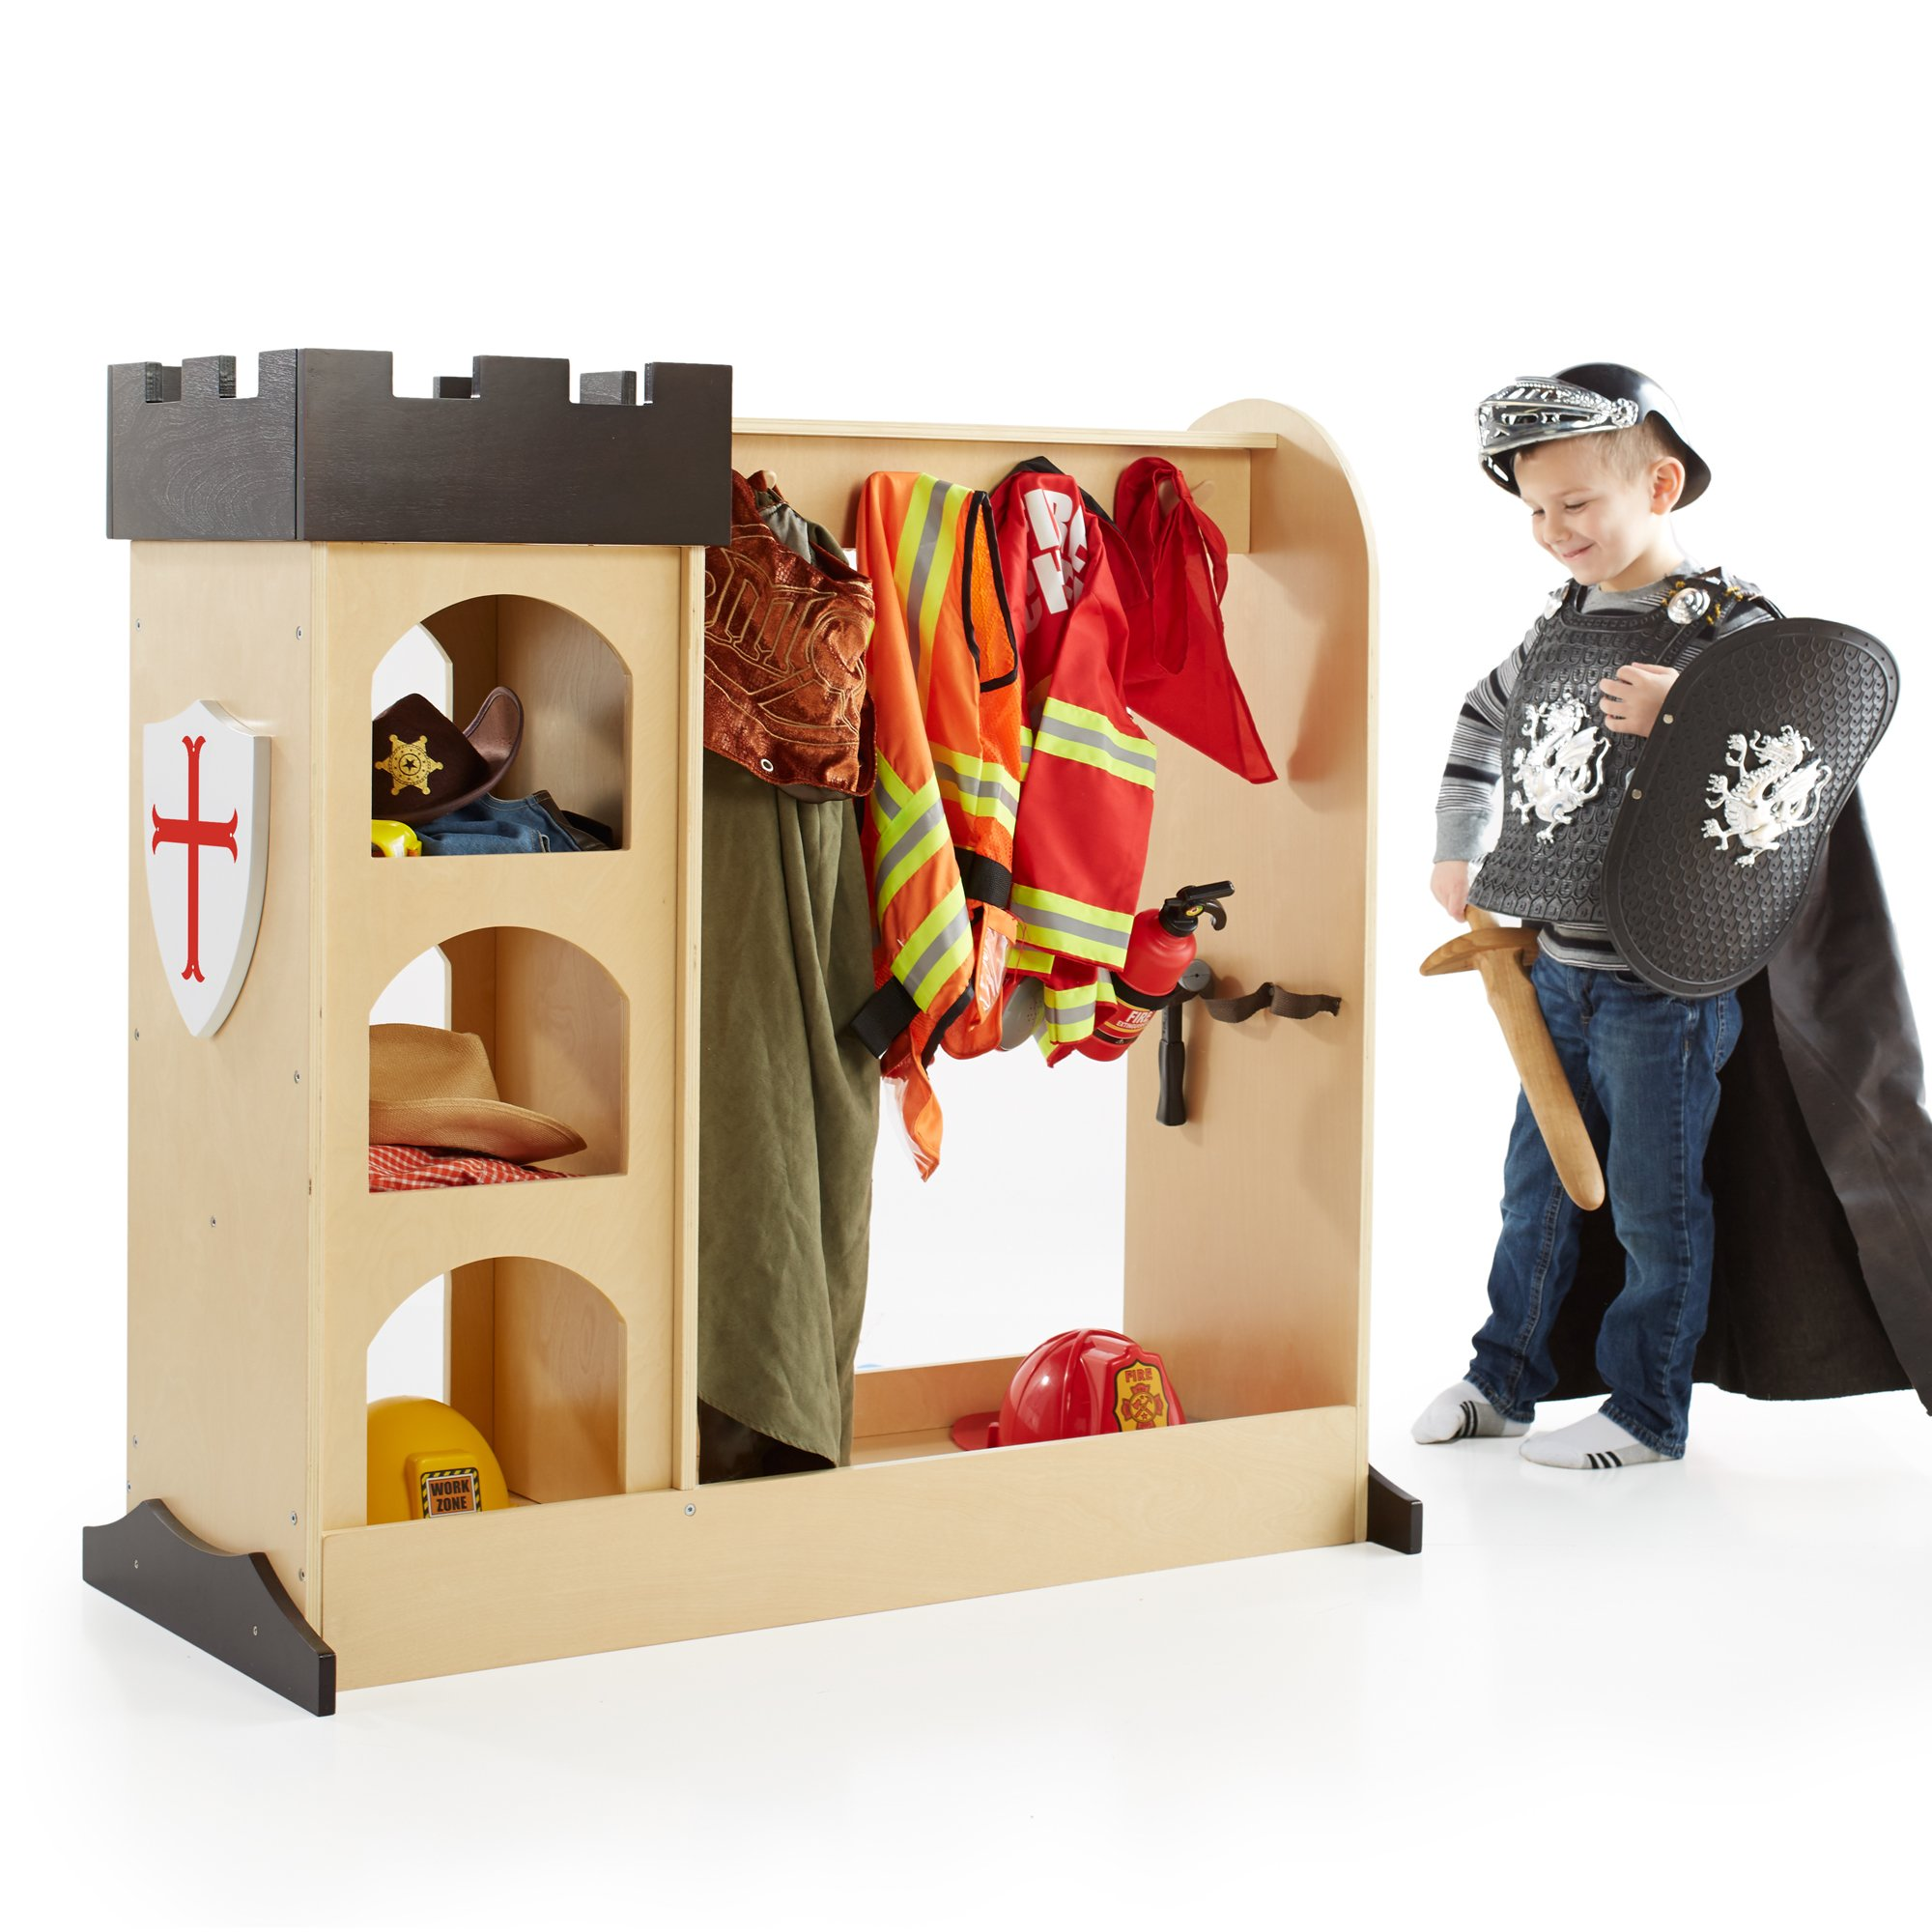 Guidecraft Castle Dramatic Play Storage by Guidecraft